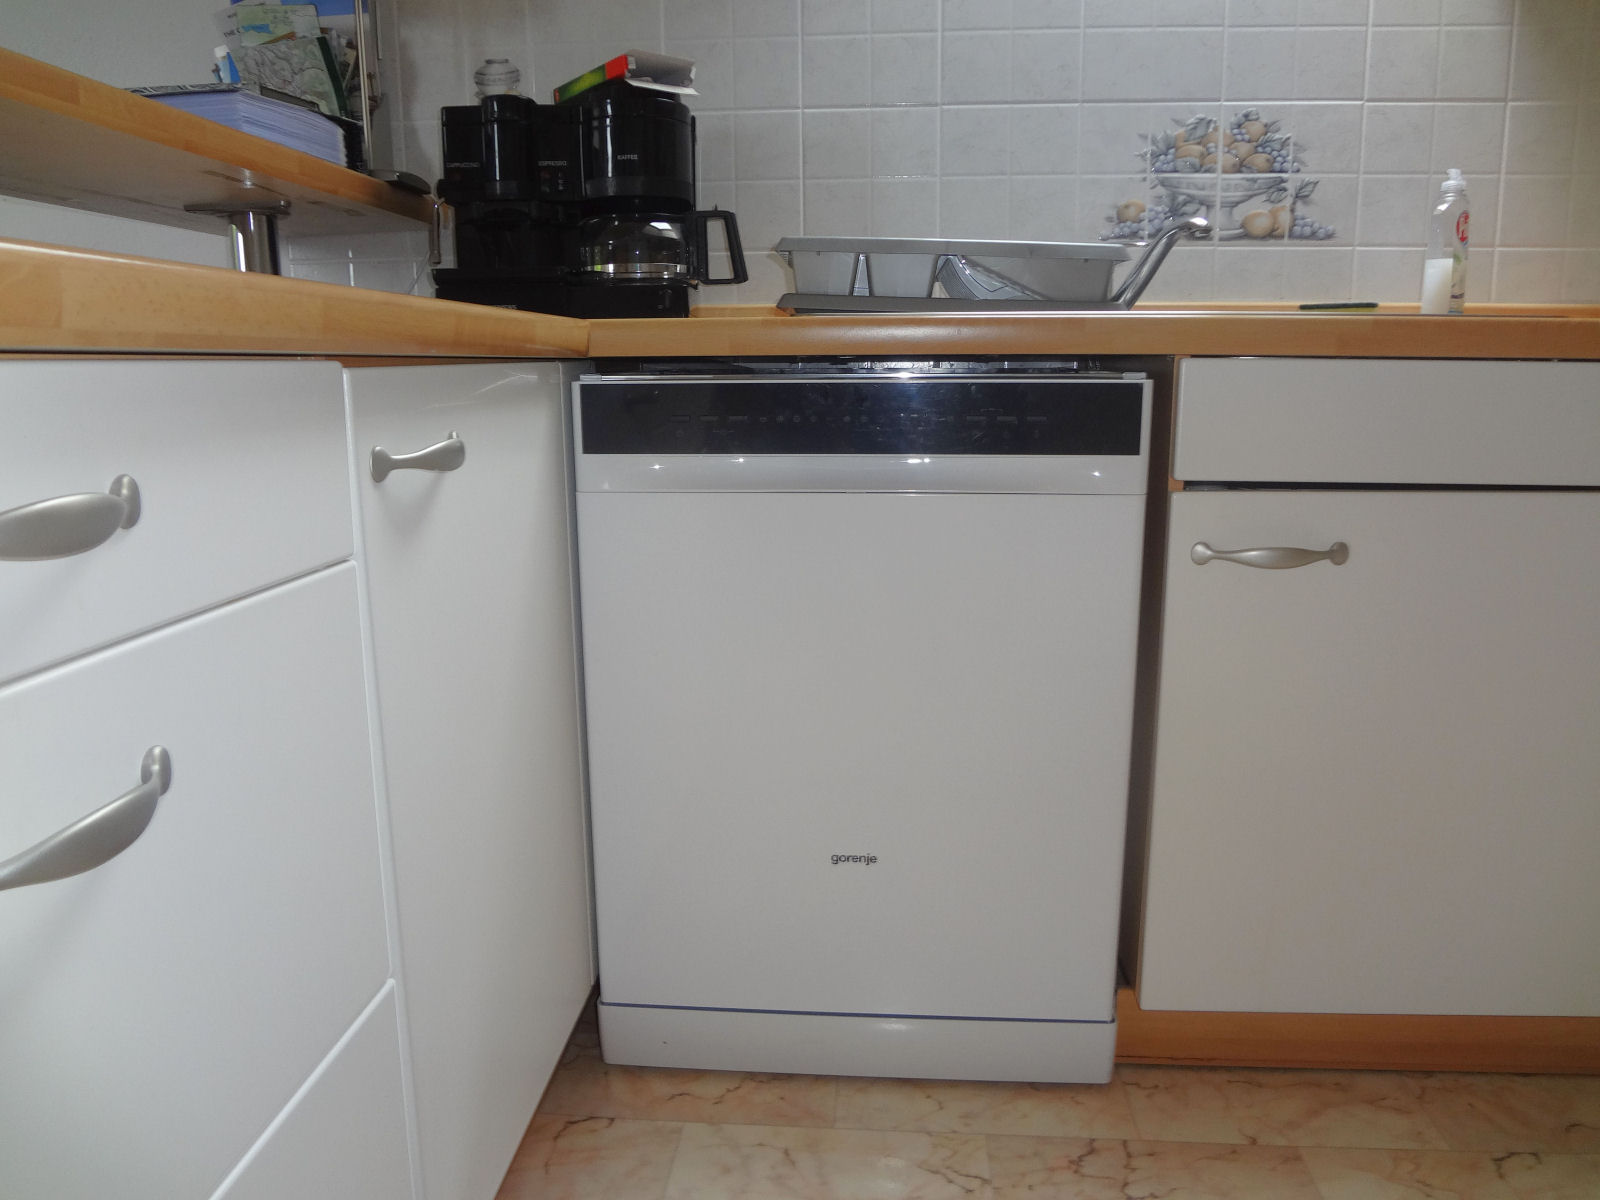 A new dishwasher in the kitchen of the Fine Stay Apartment